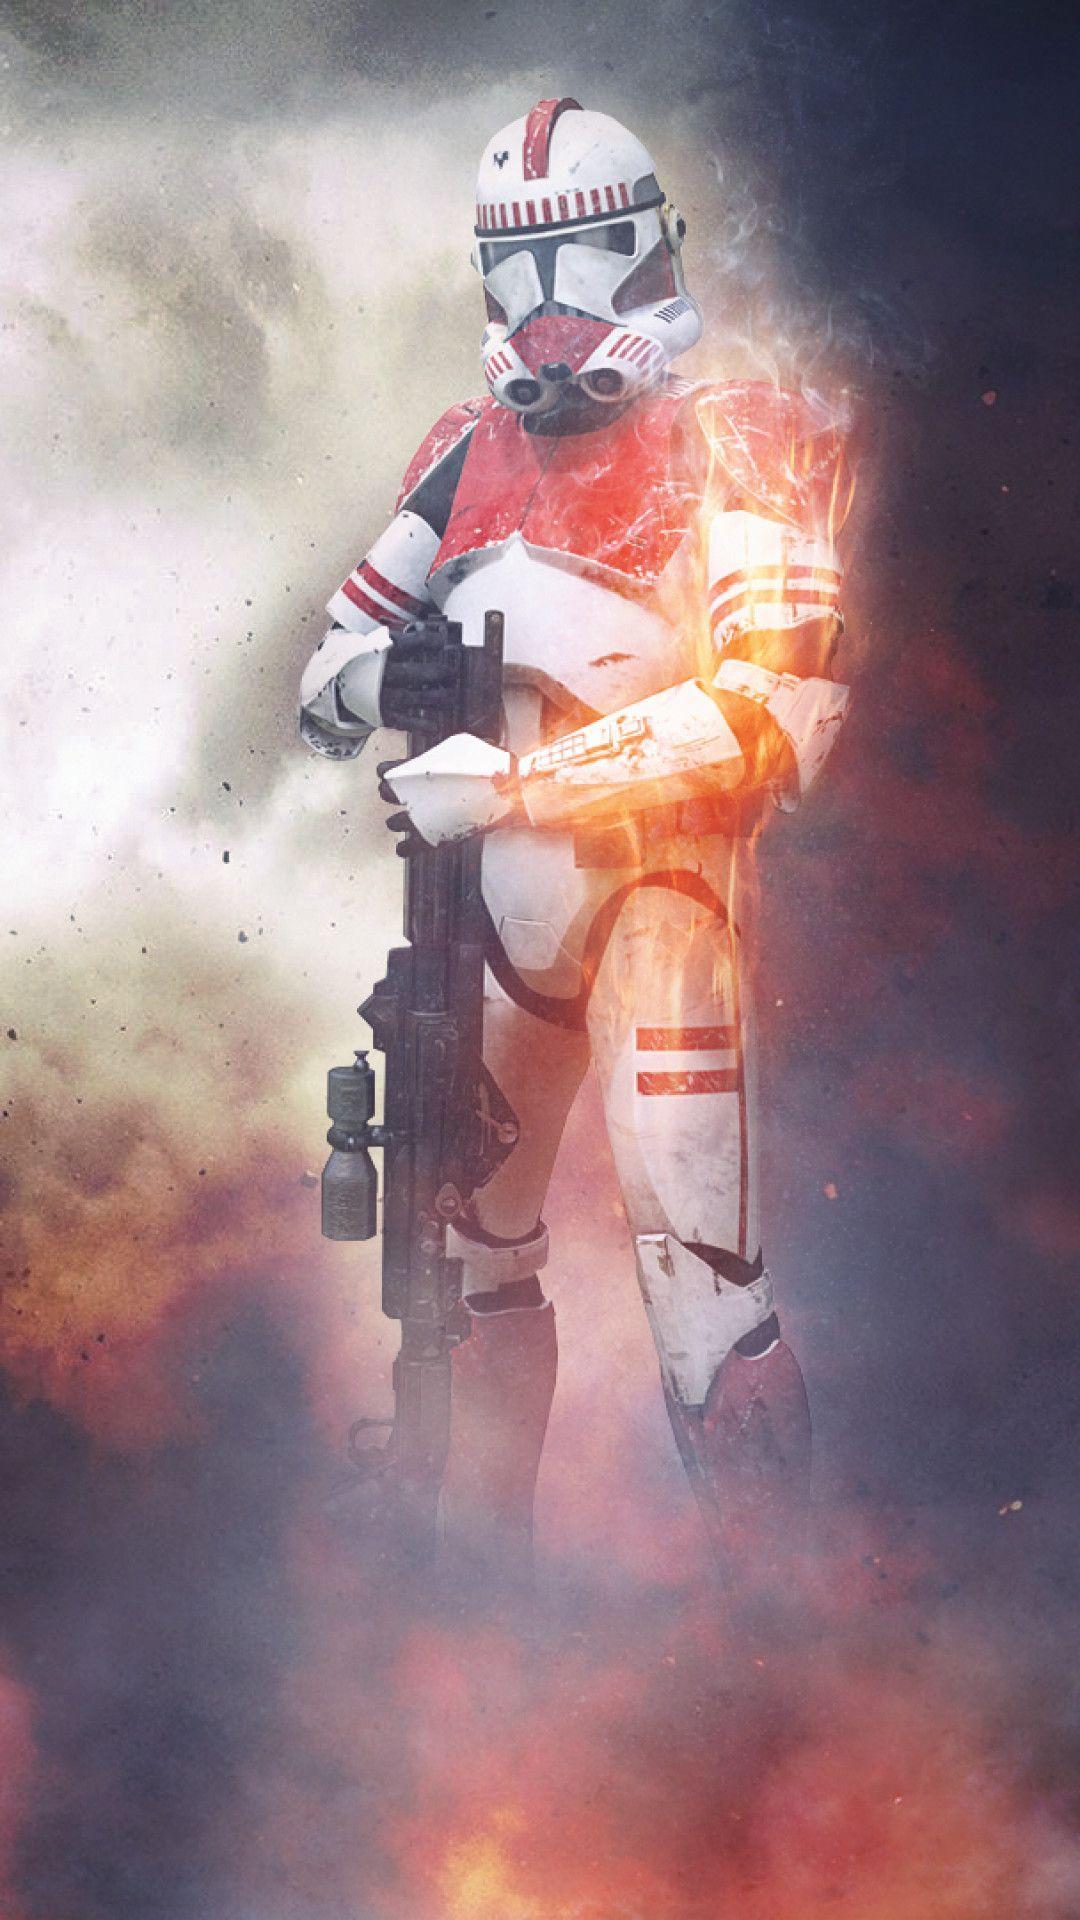 Clone Trooper Iphone Wallpapers Top Free Clone Trooper Iphone Backgrounds Wallpaperaccess